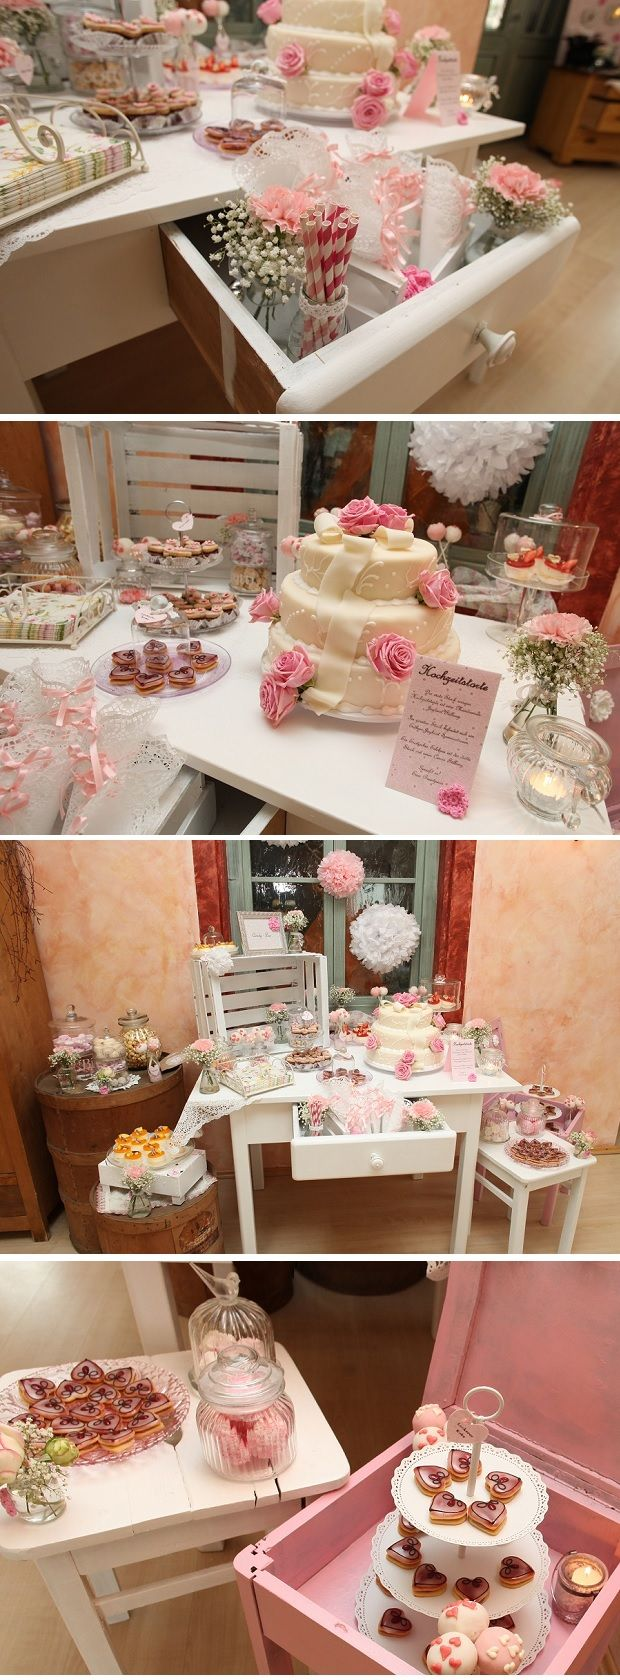 Love the shabby chic tables & stands.  Load them with homemade pies & cookies & other sweets from family, plus the wedding cake.